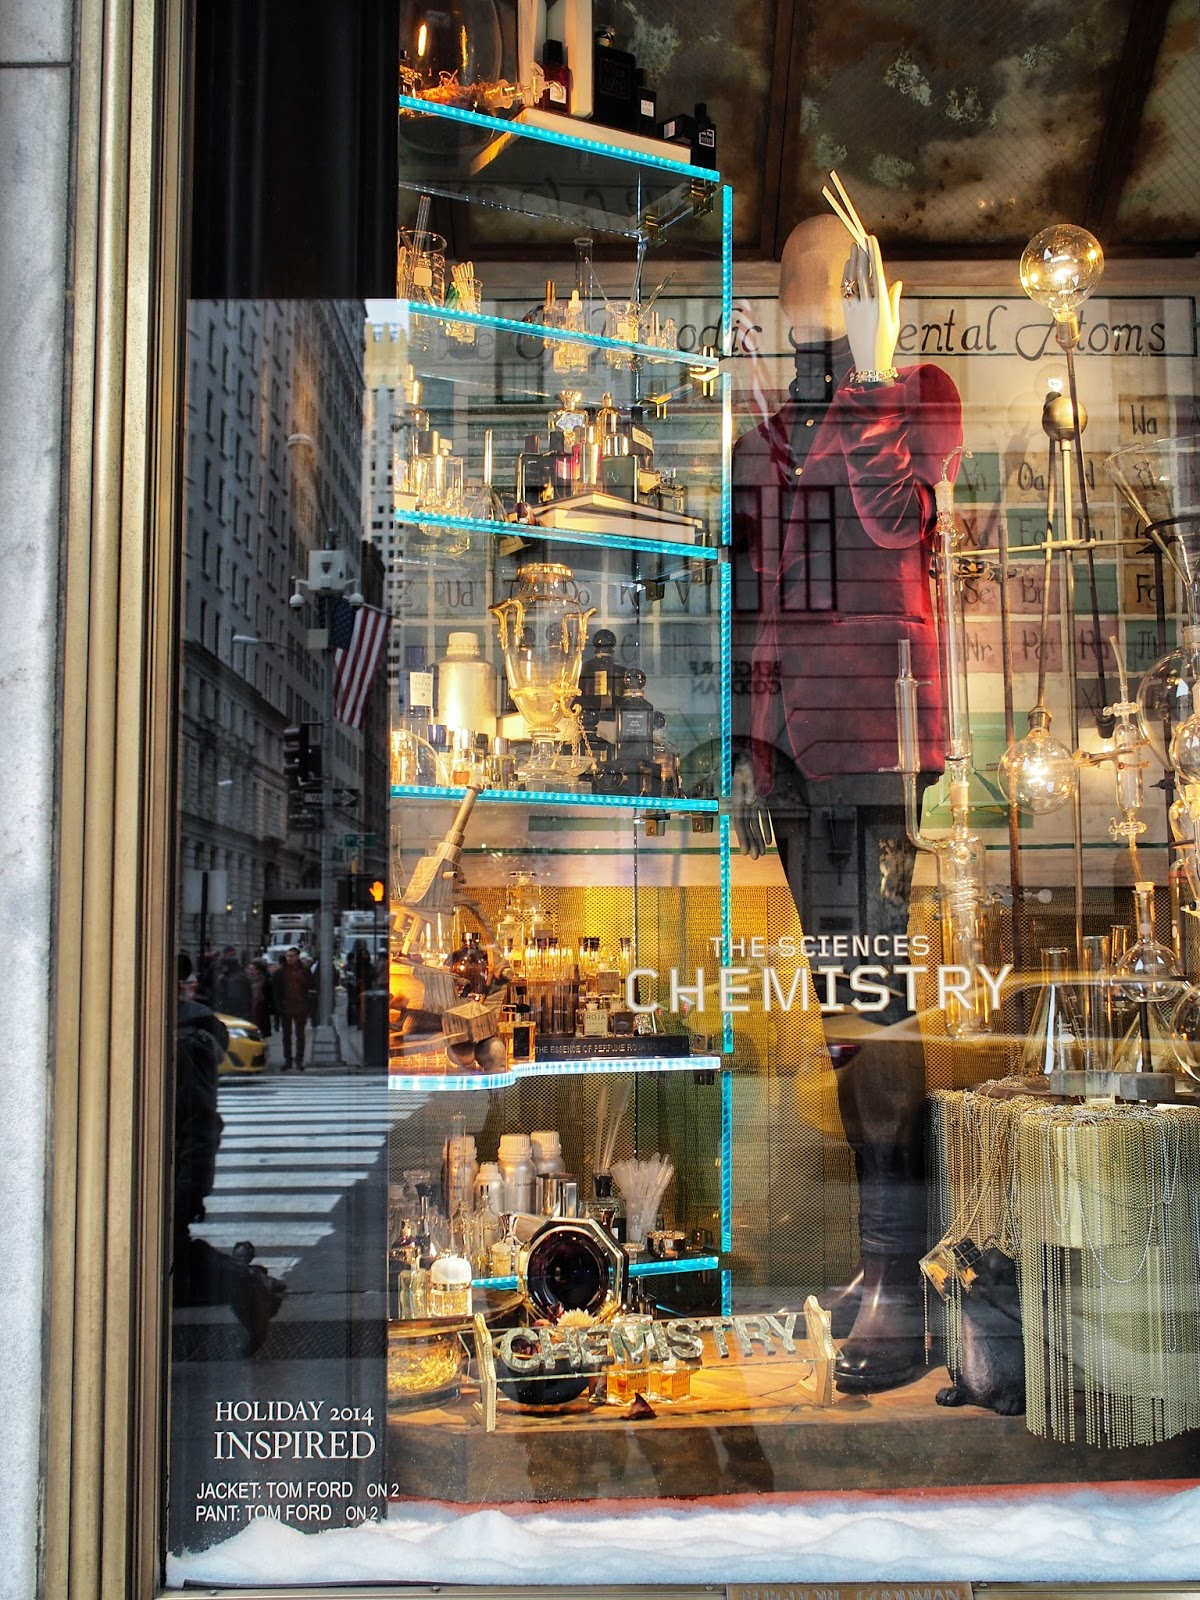 Inspired by Chemistry #inspiredbychemistry #bgwindows #windowwatchers #holidaywindows #5thavenuewindows #NYC  #holidays #besttimeoftheyear #nyc ©2014 Nancy Lundebjerg